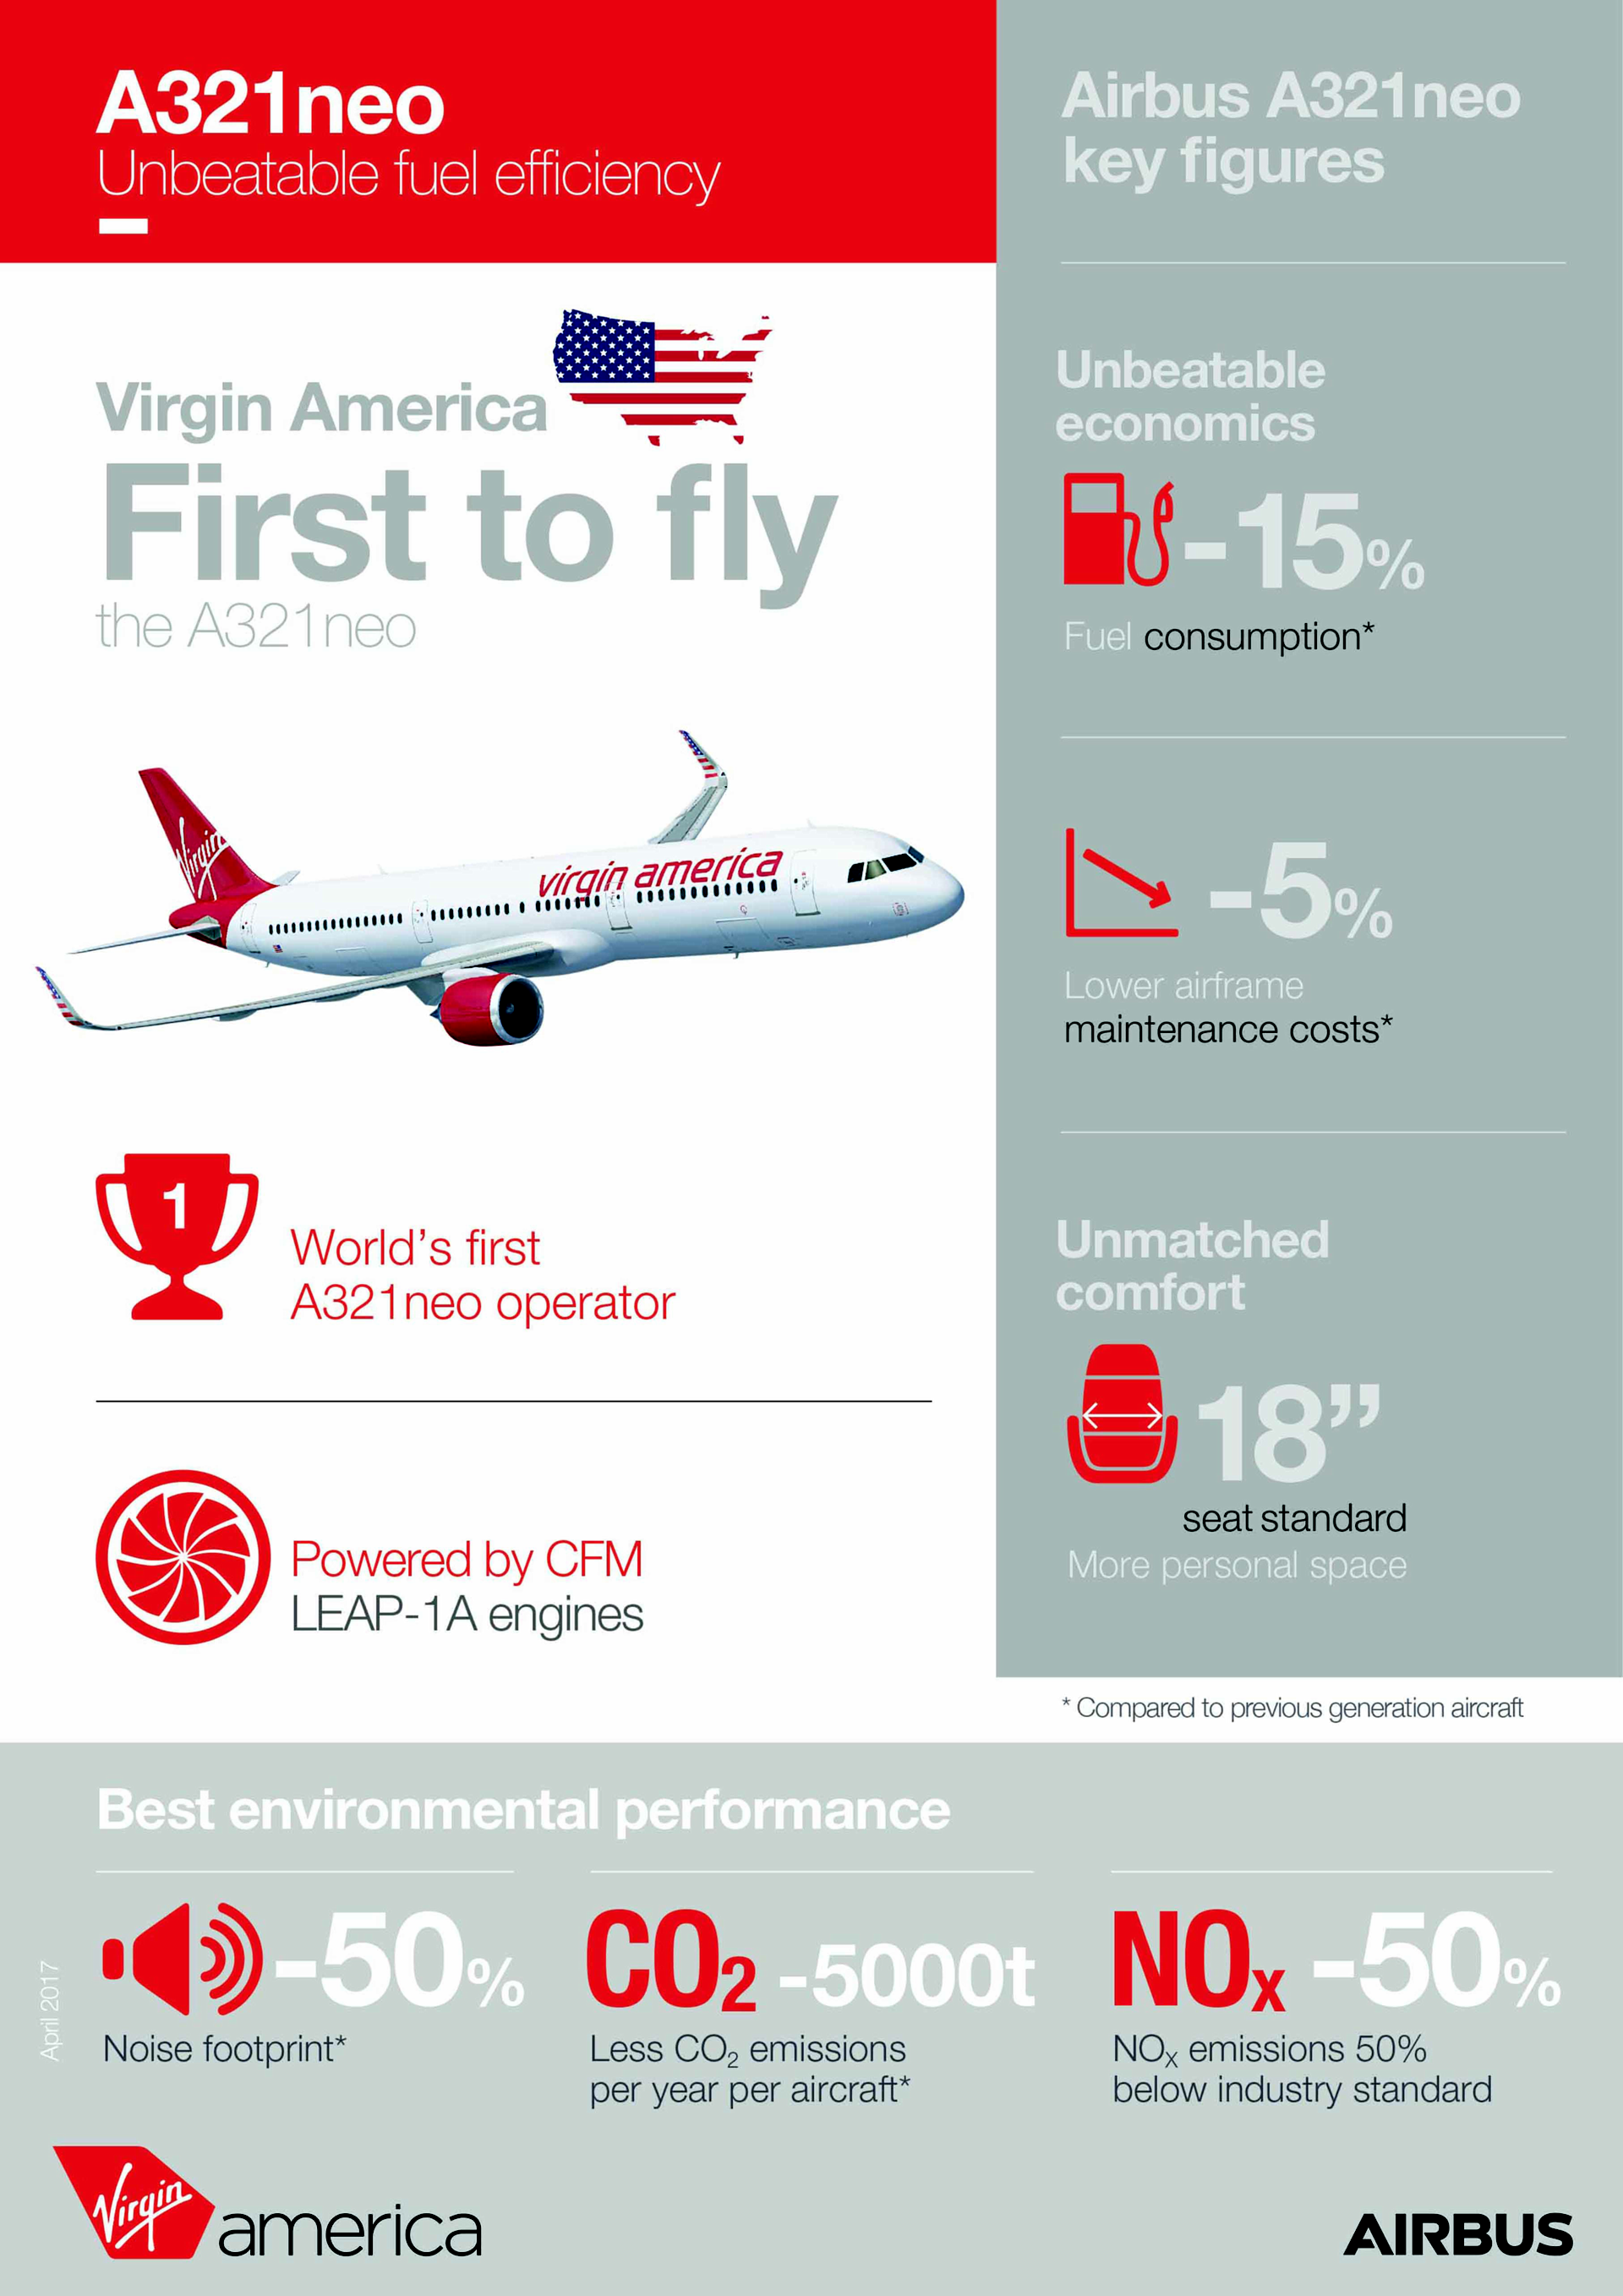 An infographic highlighting Virgin America's role as the first A321neo operator, including key figures